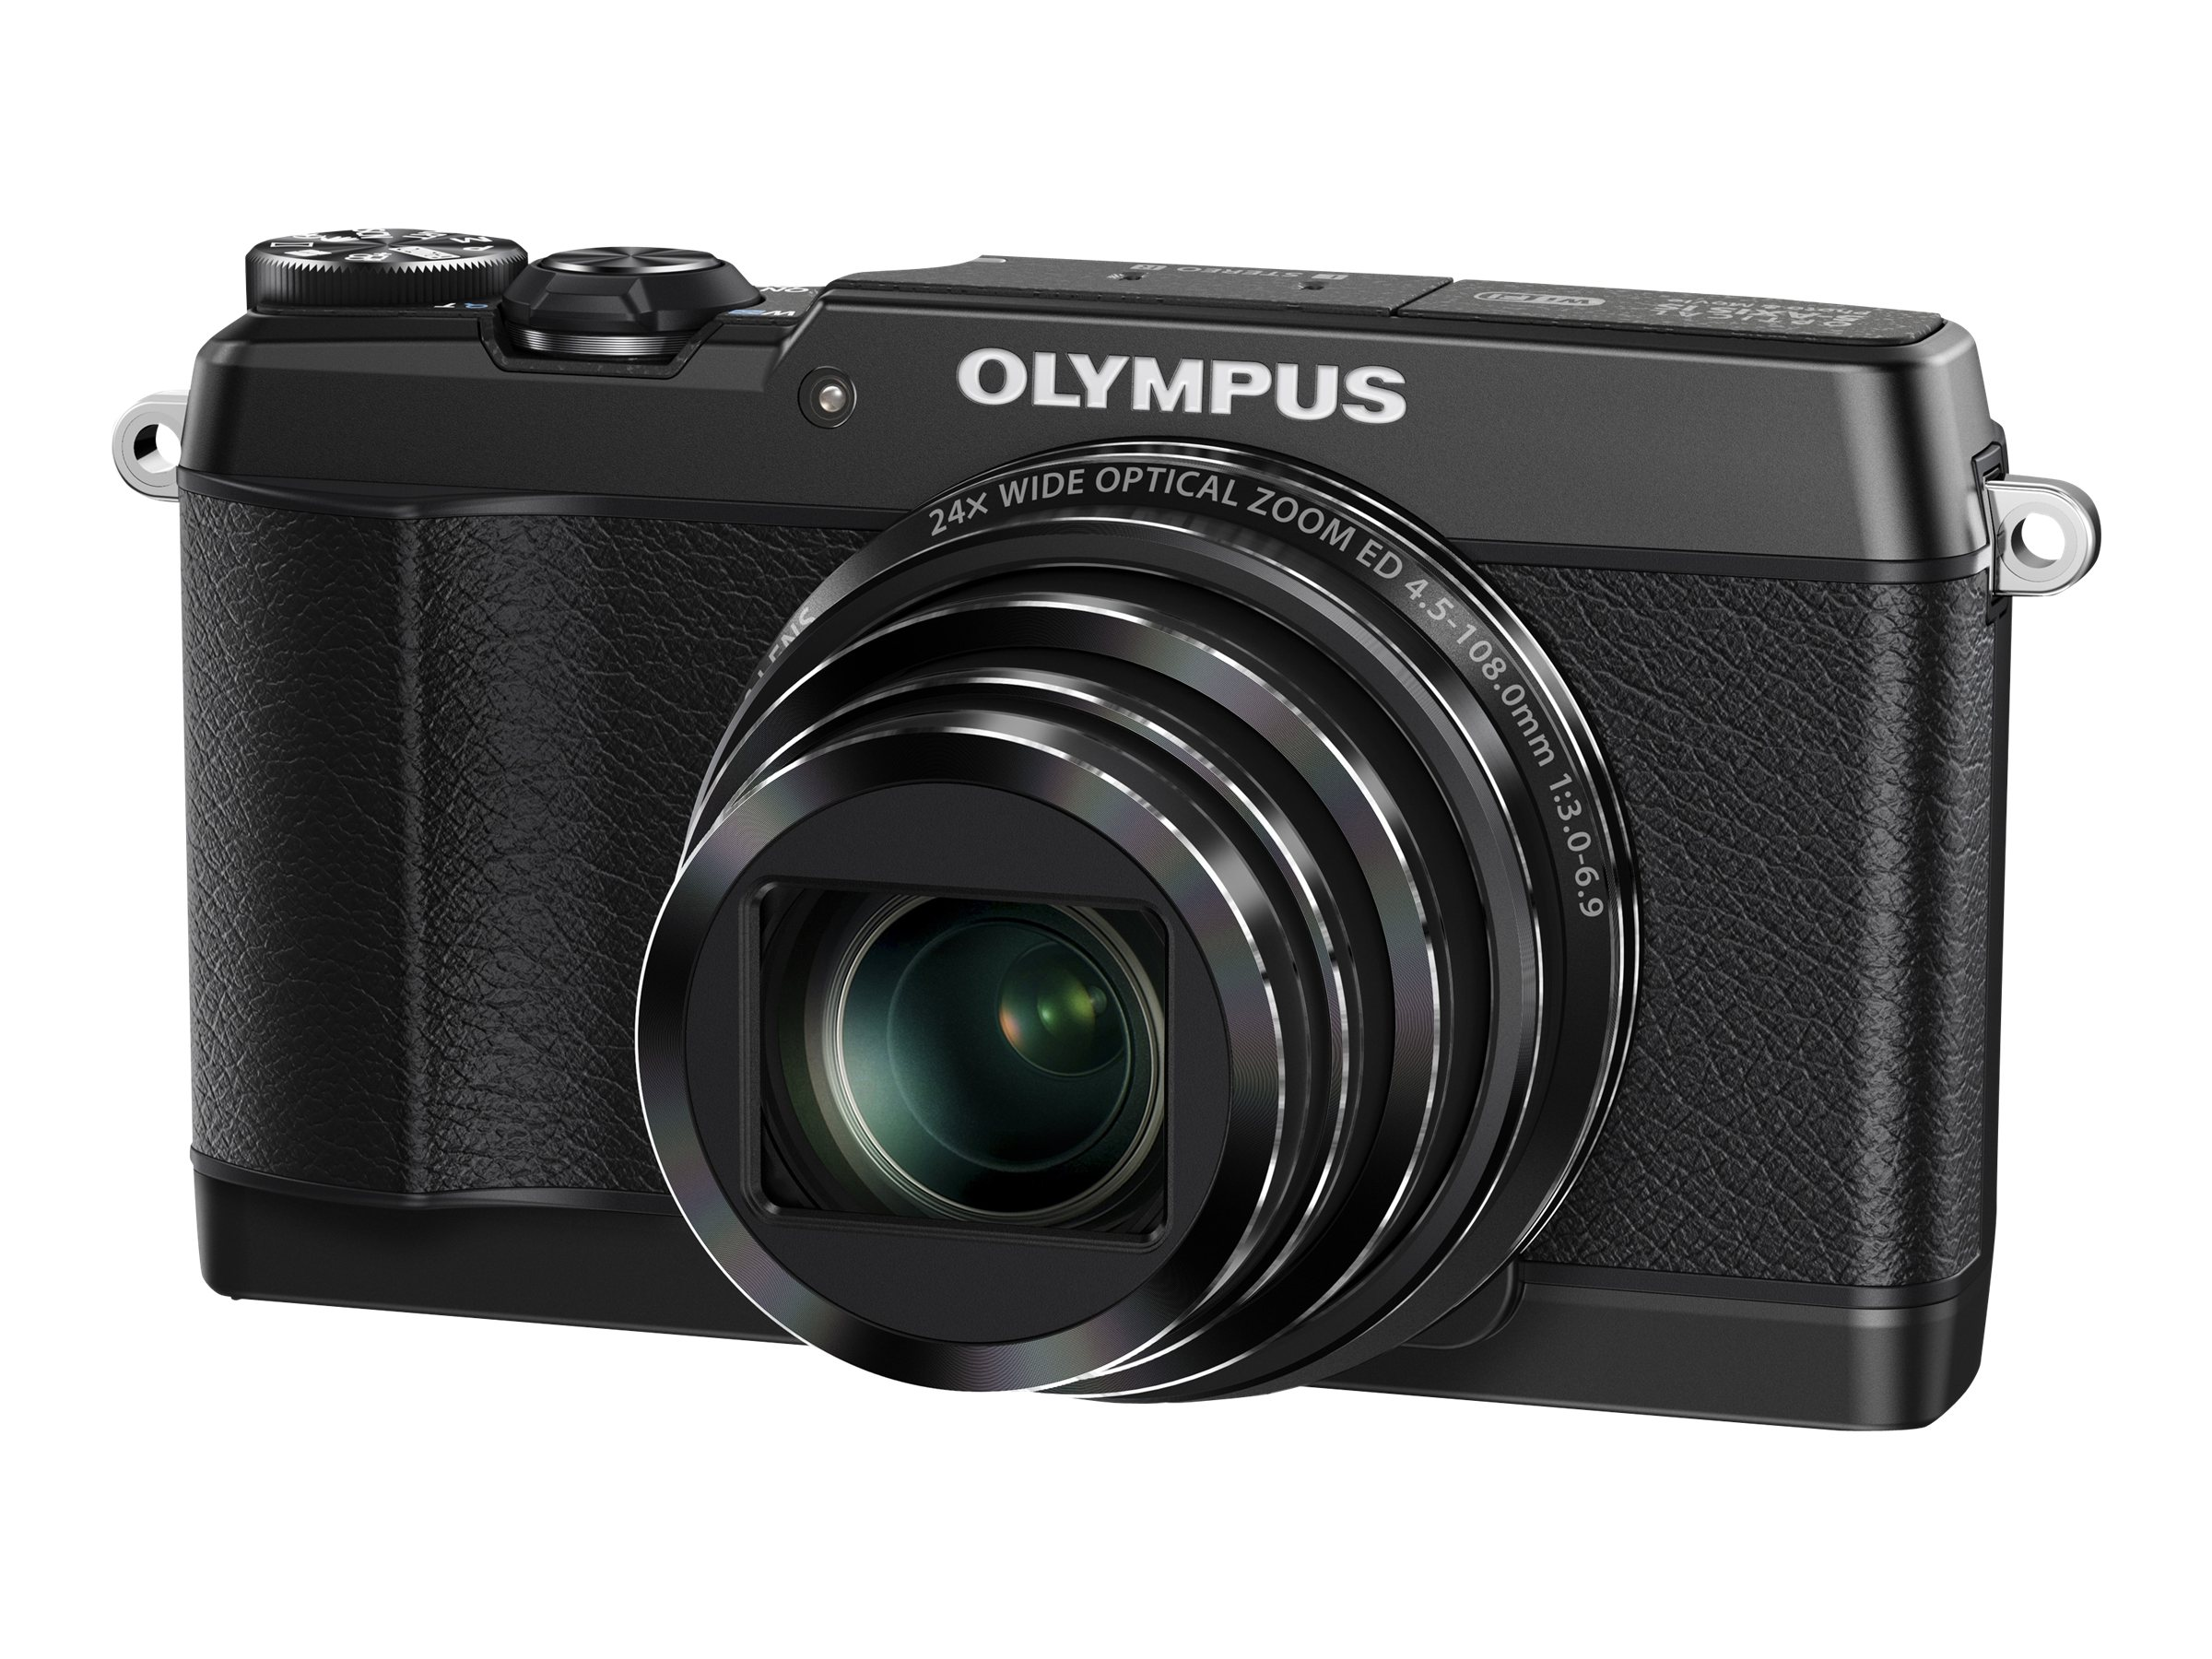 Olympus Stylus SH-1 Digital Camera, 16MP, Black, V107080BU000, 17051656, Cameras - Digital